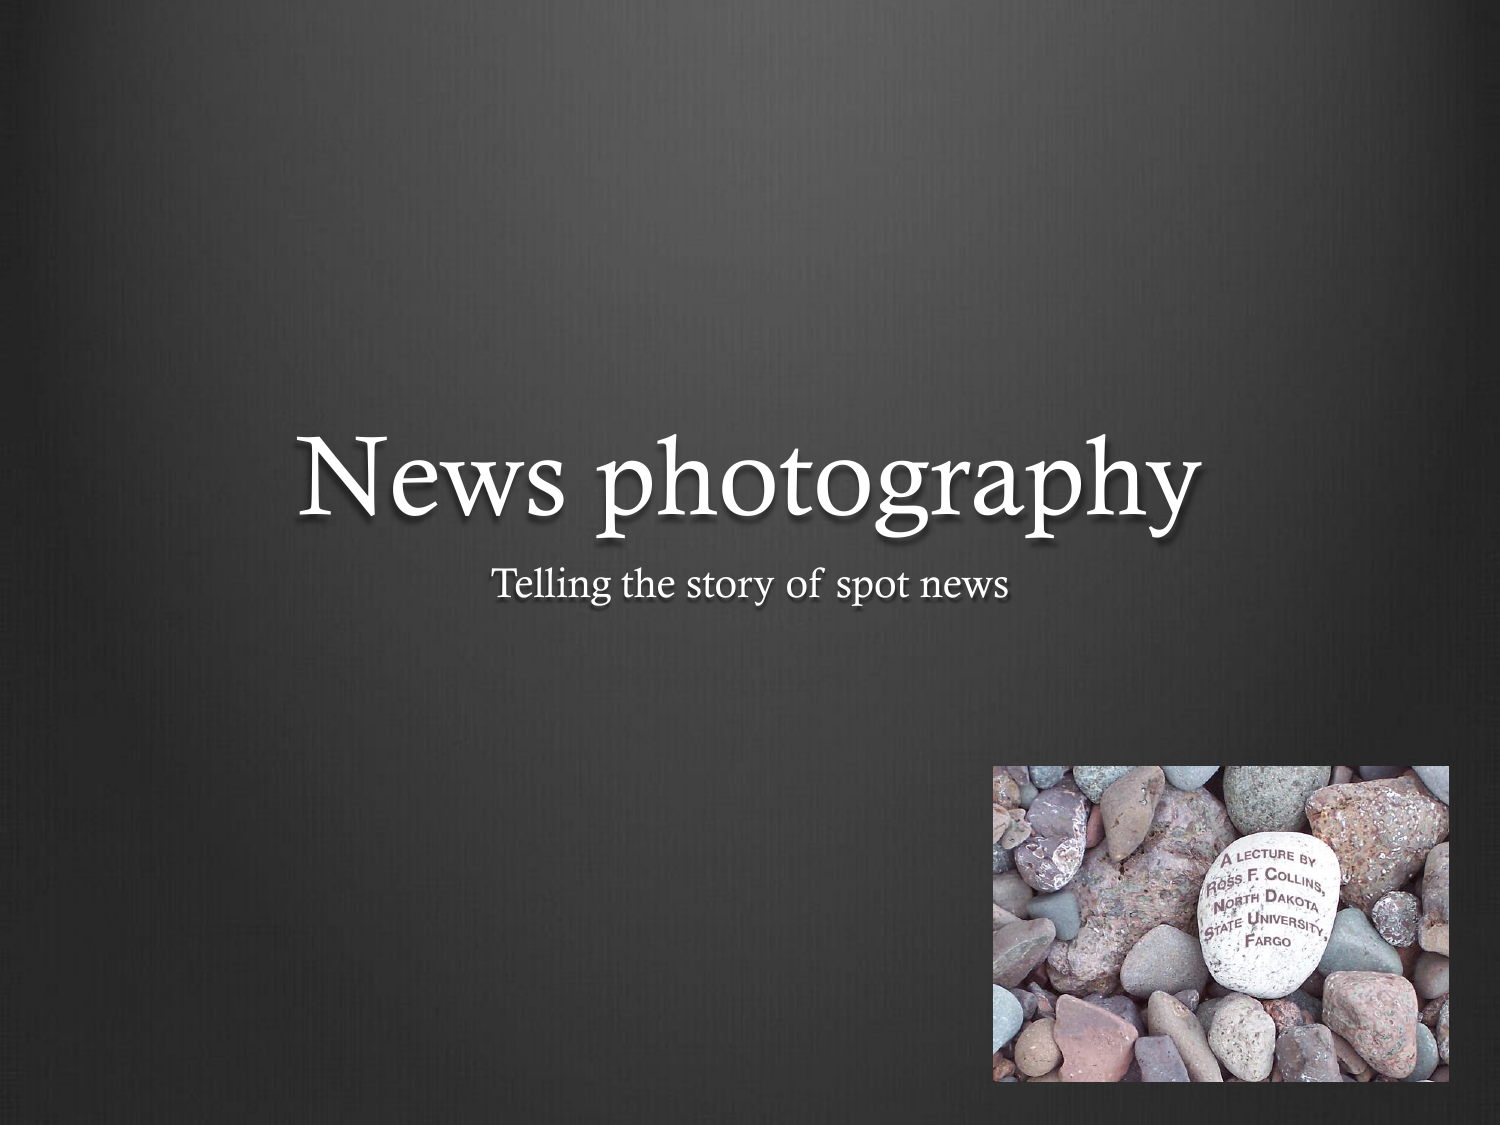 Principles of news photography